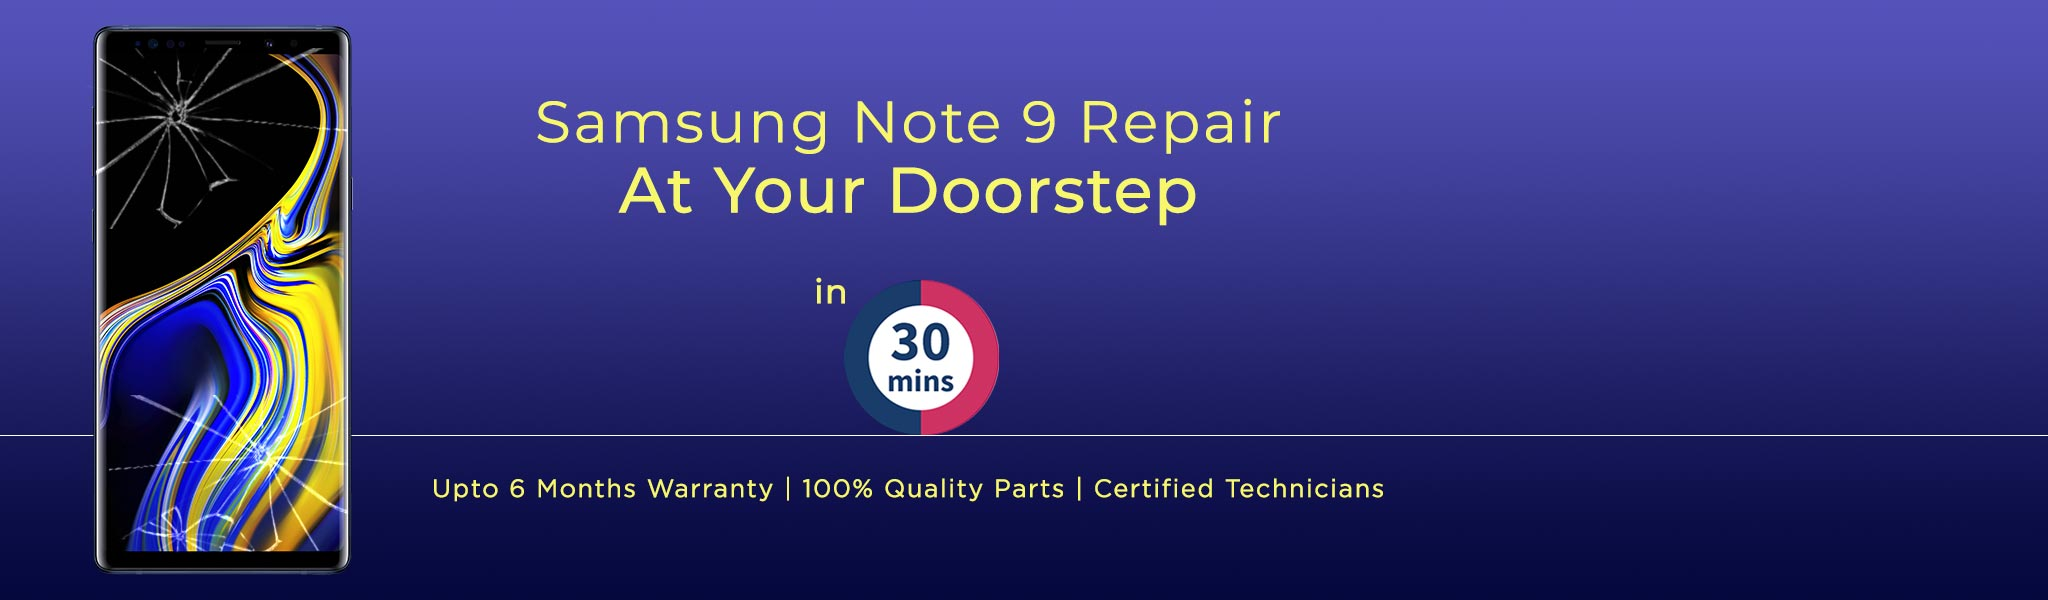 samsung-note-9-repair.jpg